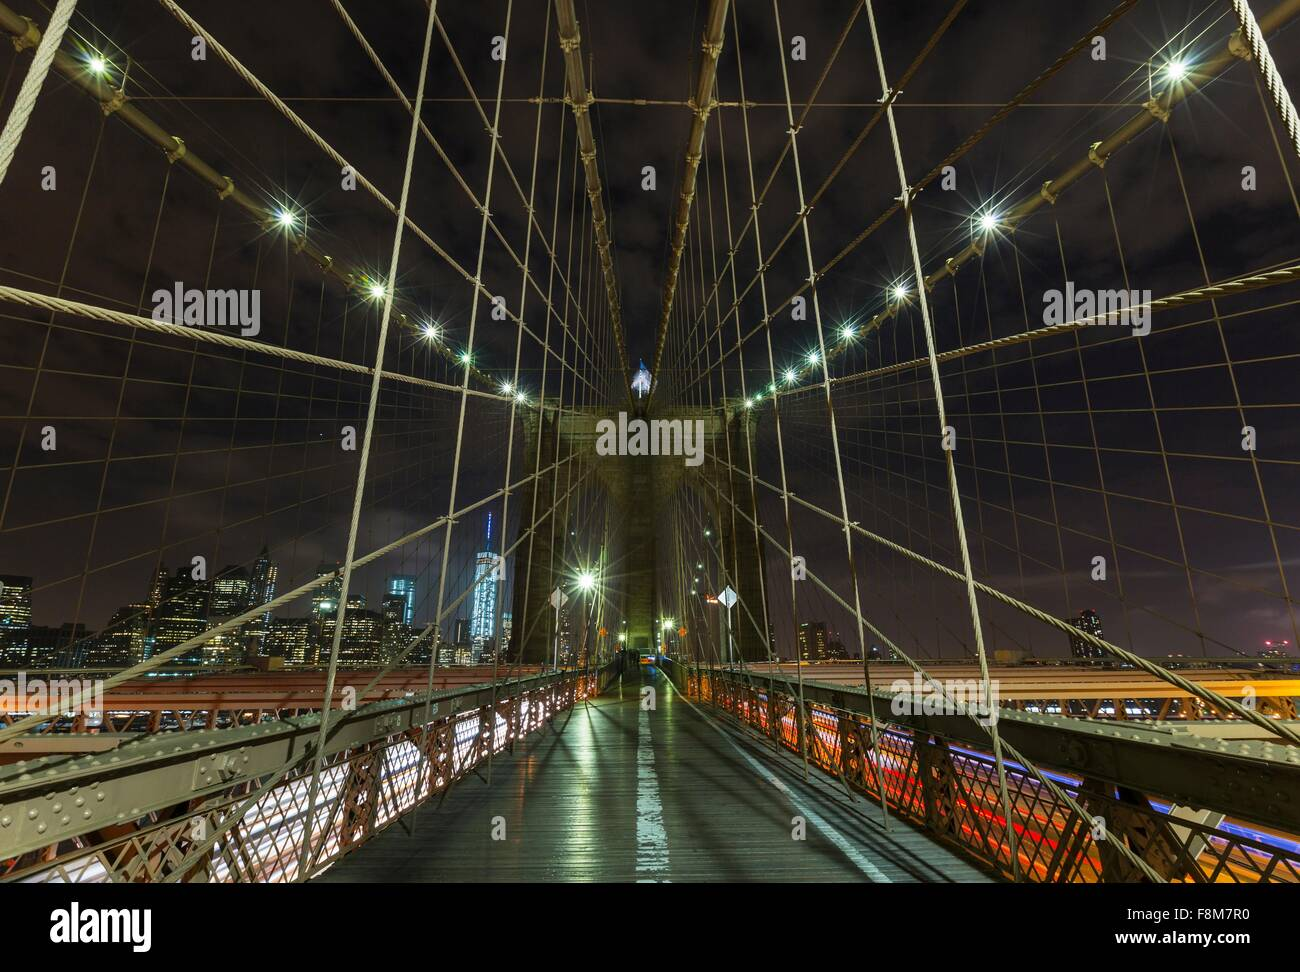 Brooklyn bridge walkway and distant Manhattan financial district skyline at night, New York, USA - Stock Image